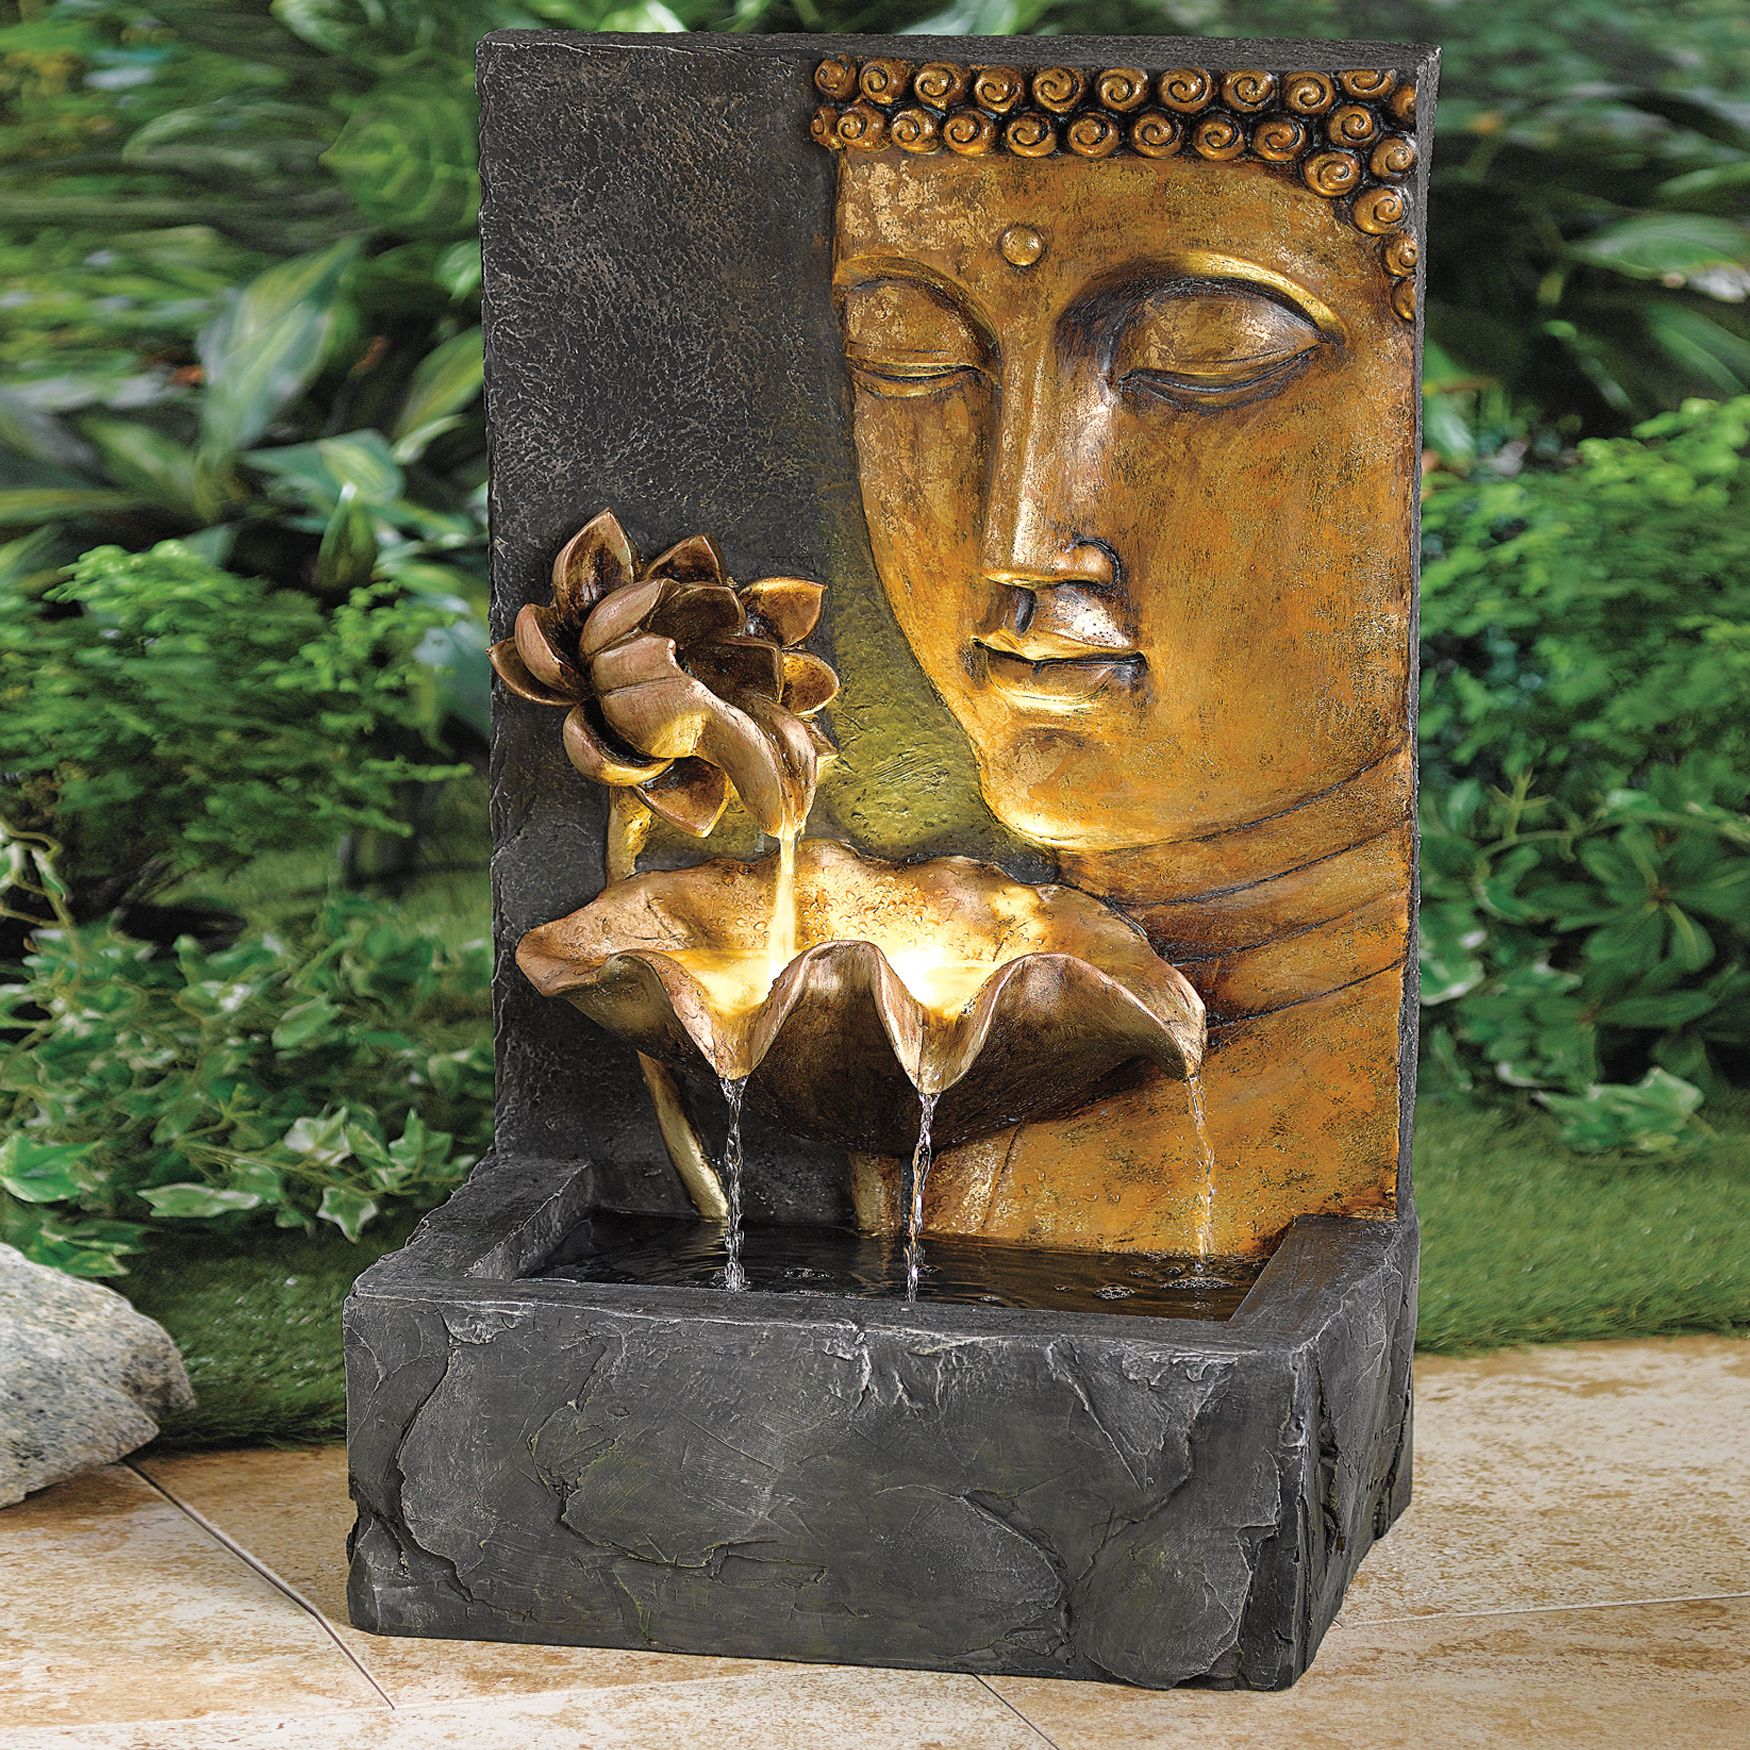 Hand Painted Buddha Face Fountain Buddha Garden Indoor Water Fountains Fountains Outdoor